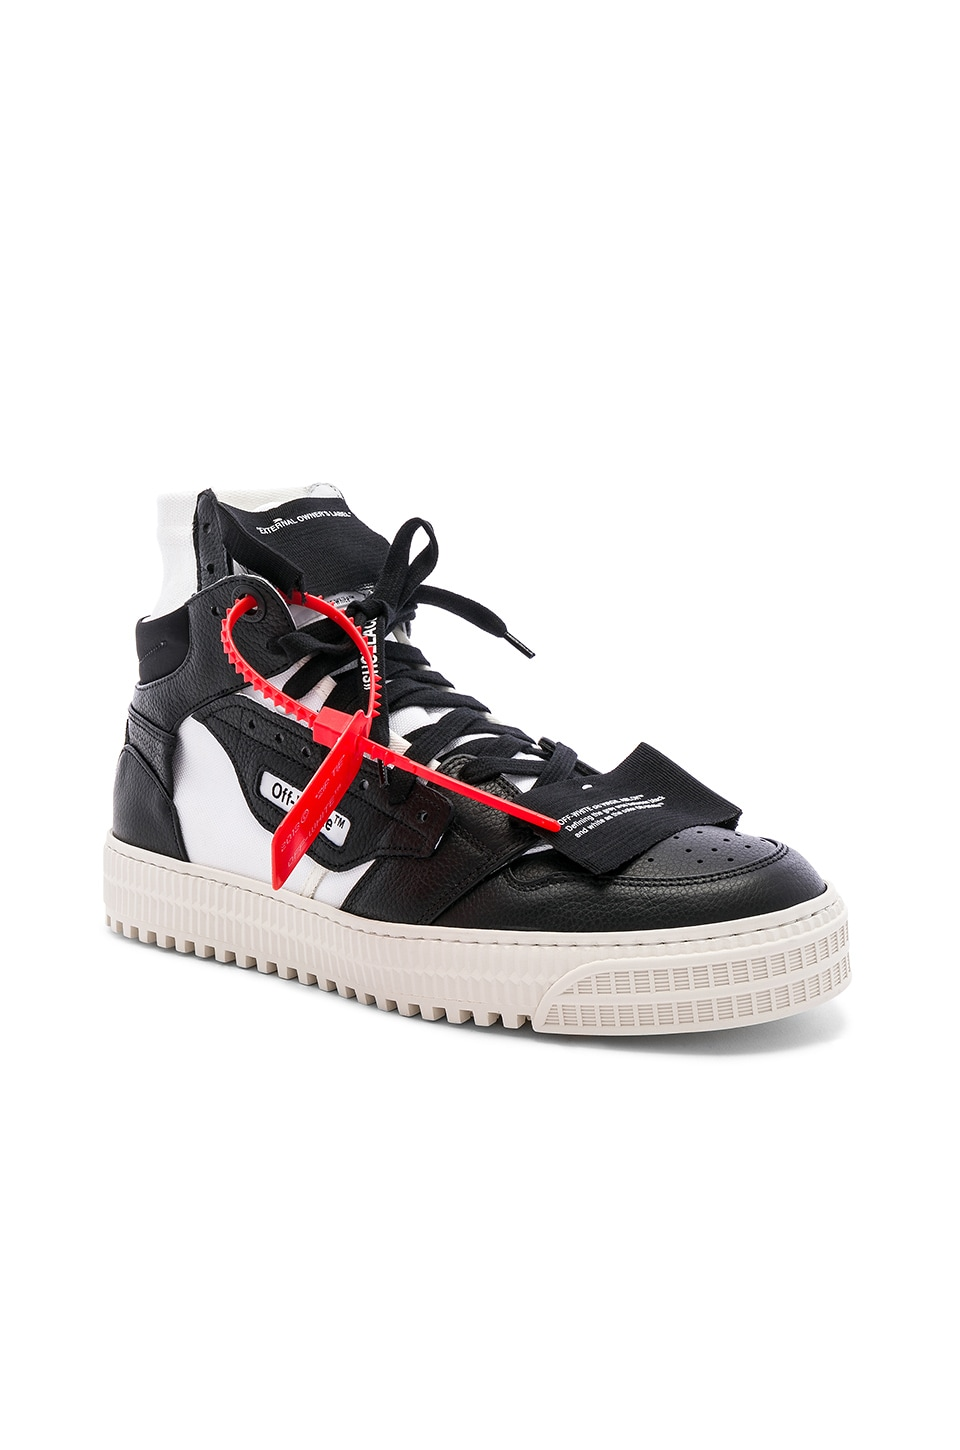 aba194cd8ee44c OFF-WHITE Off Court Sneaker in Black